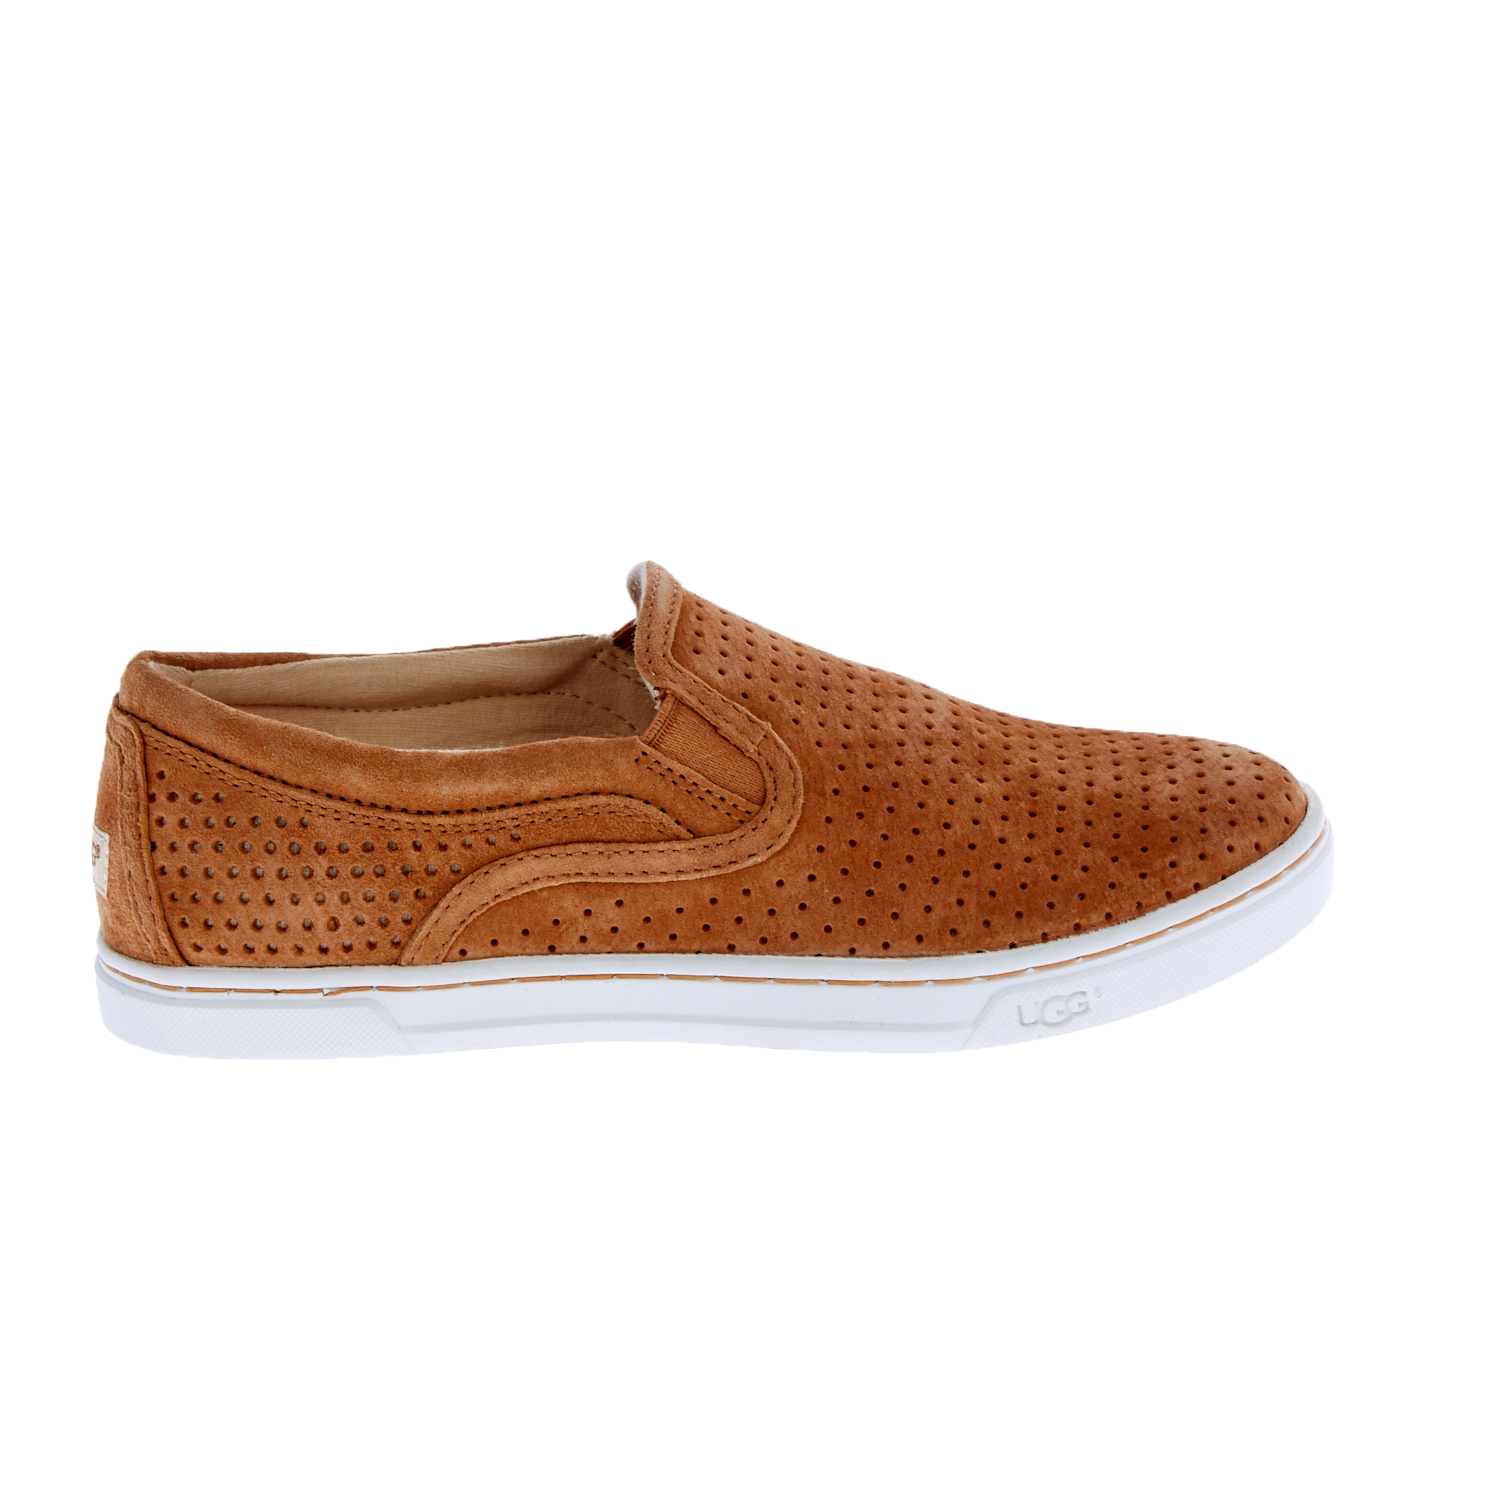 UGG AUSTRALIA – Γυναικεία slip-on sneakers UGG FIERCE GEO καφέ